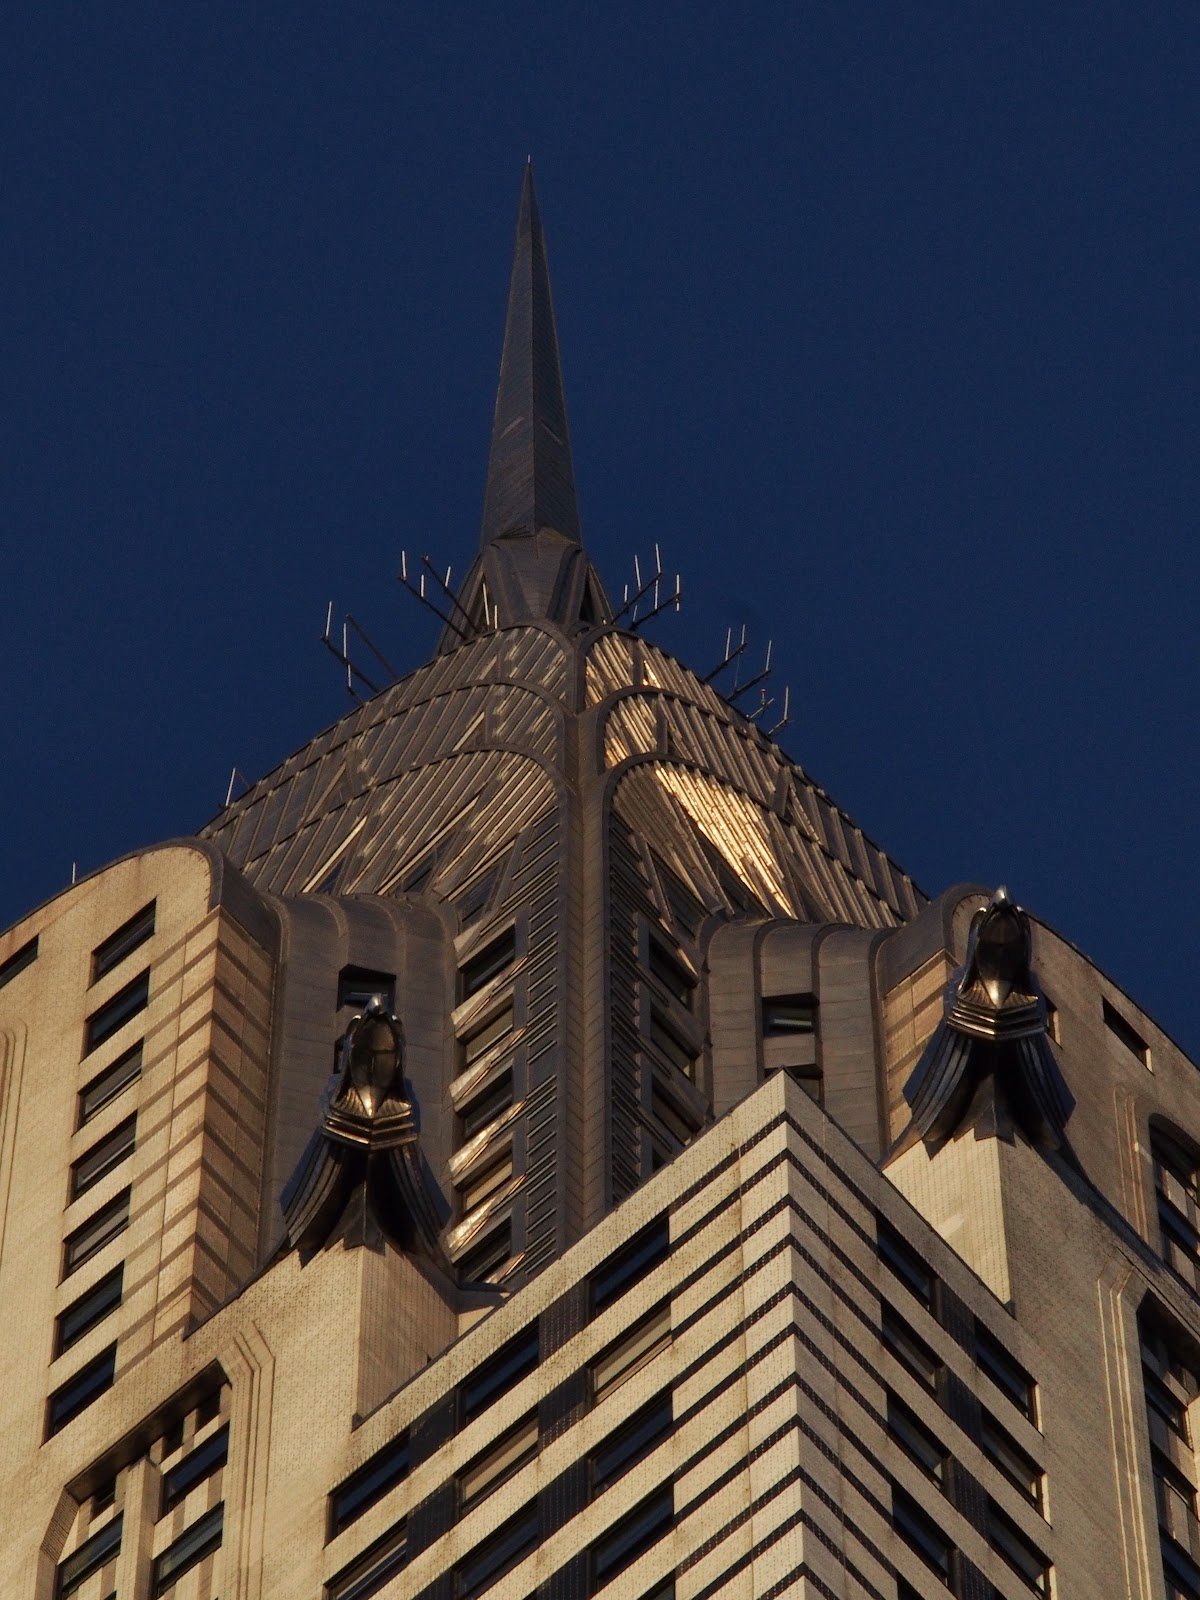 All about the Top, #chryslerbuilding #artdeco #nyc #architecture 2014